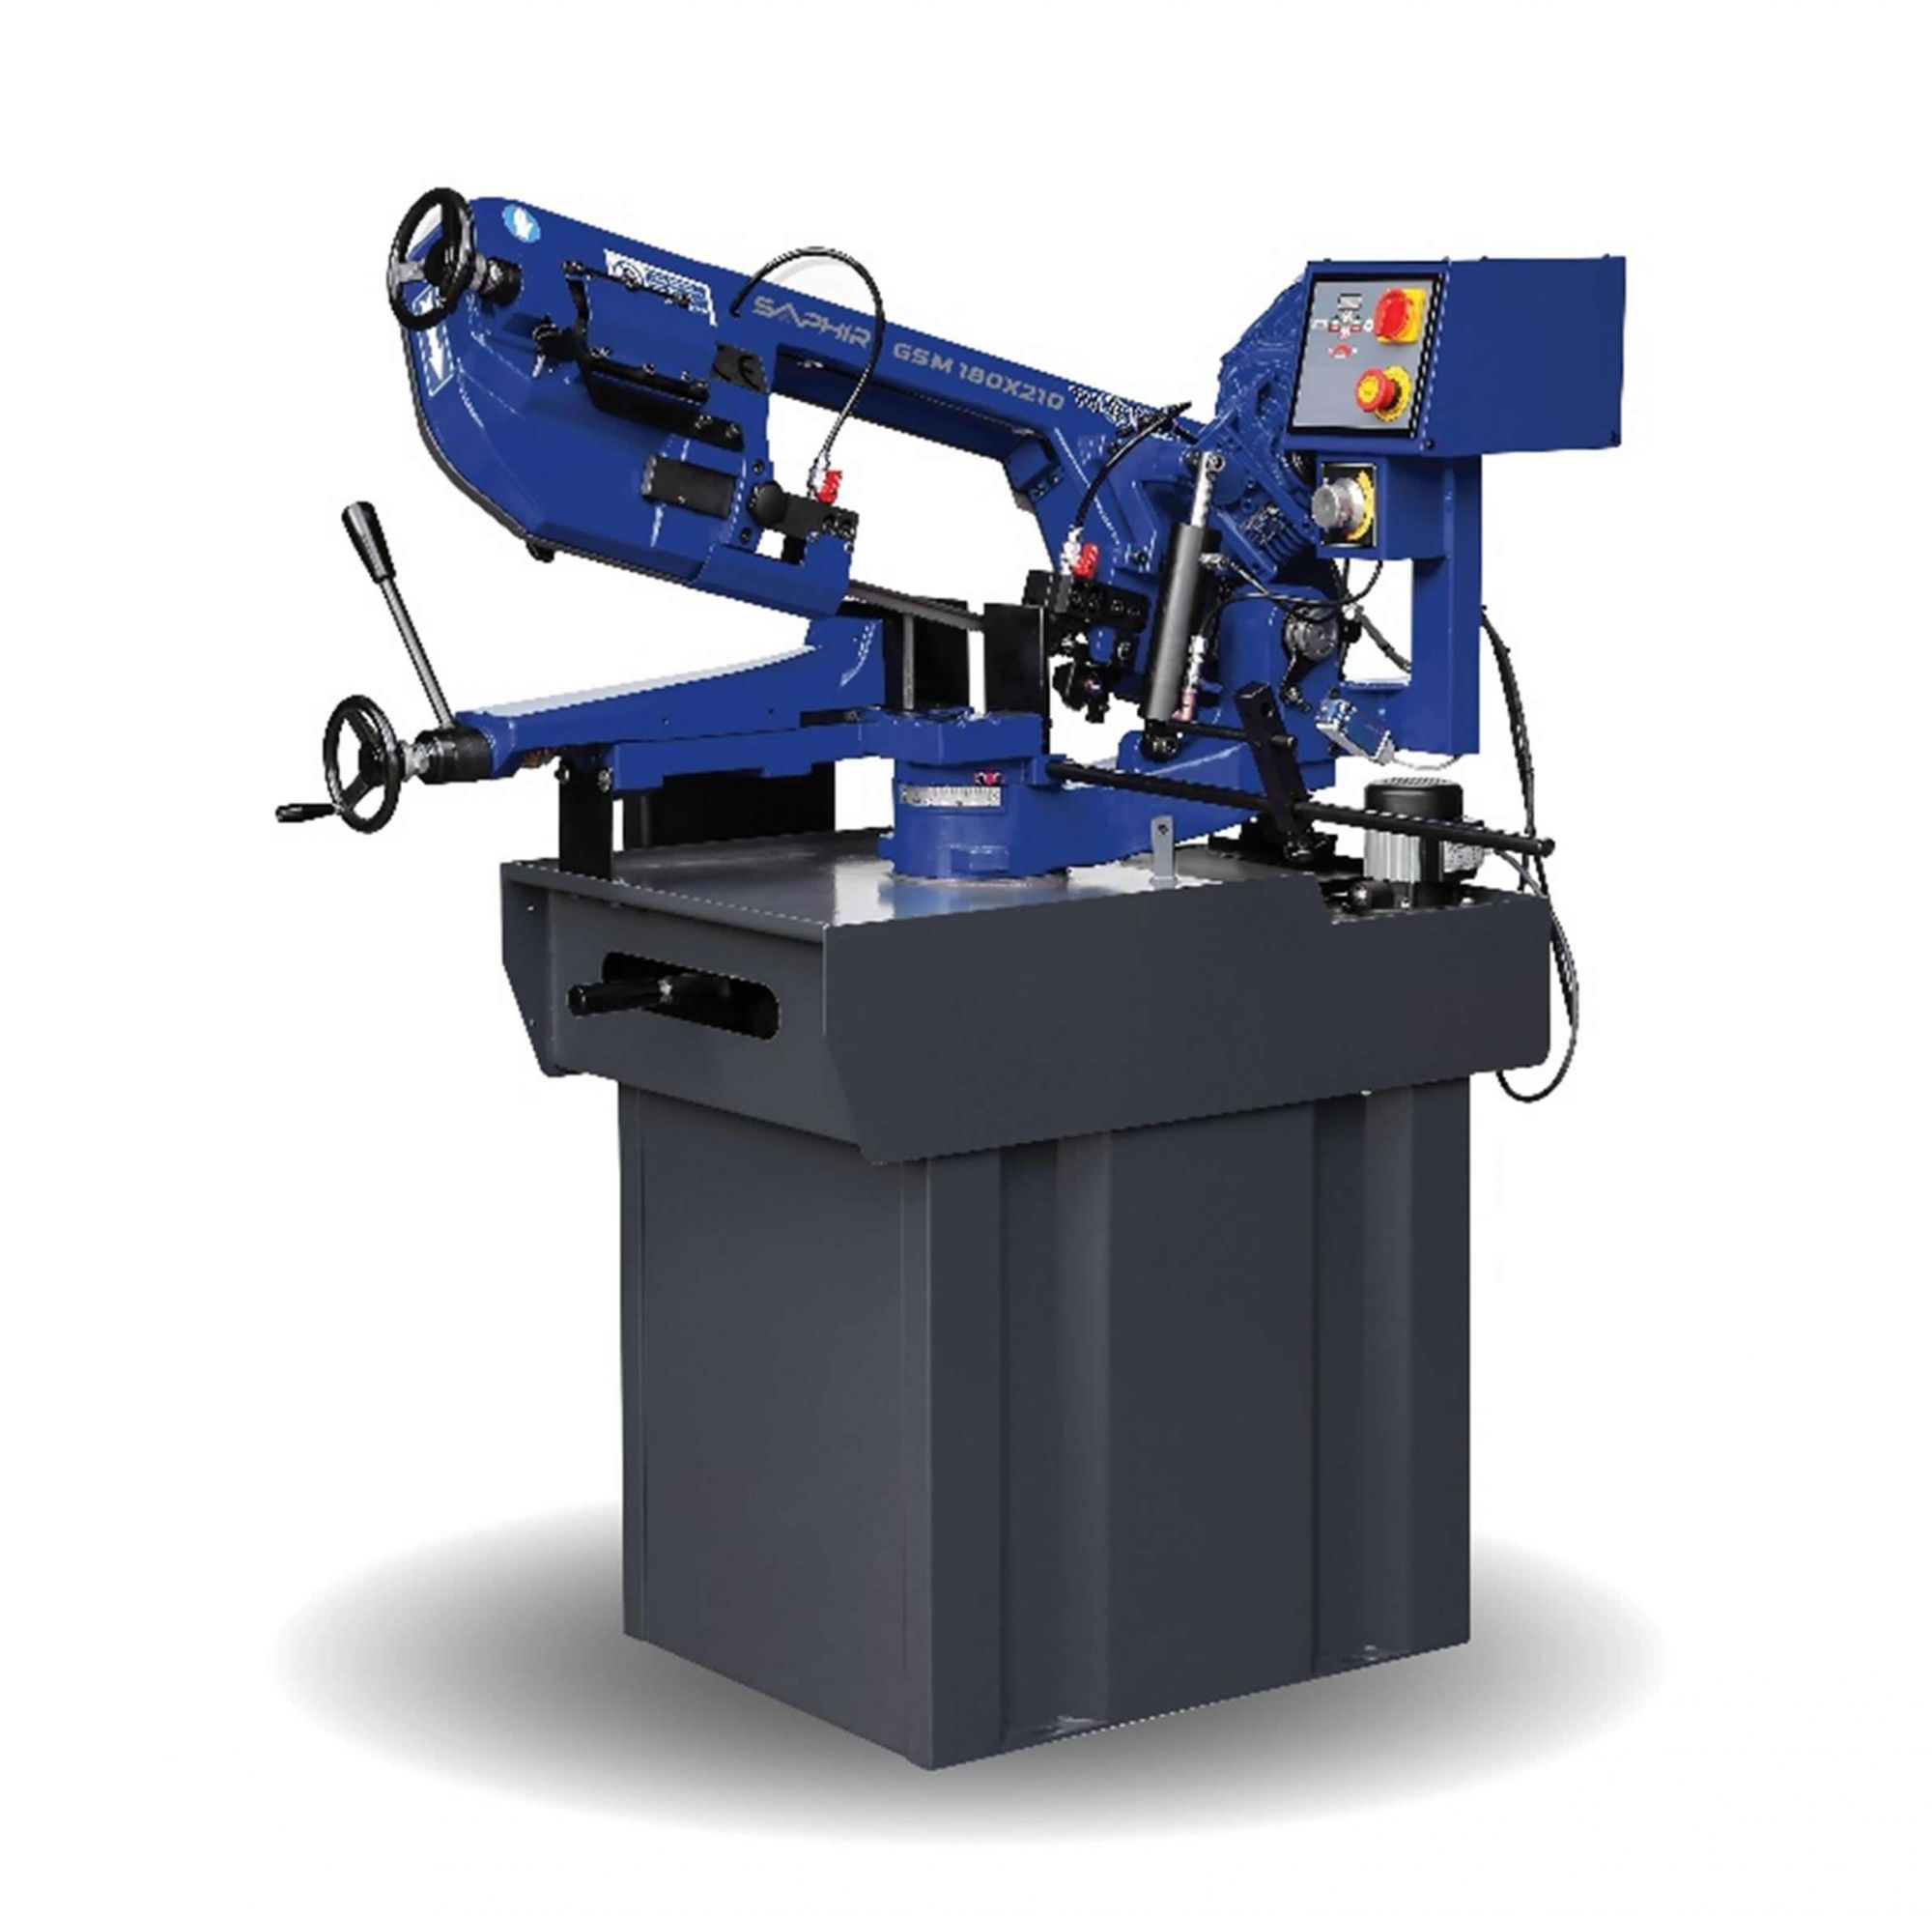 SD GSM 180x210 Manual Bandsaw